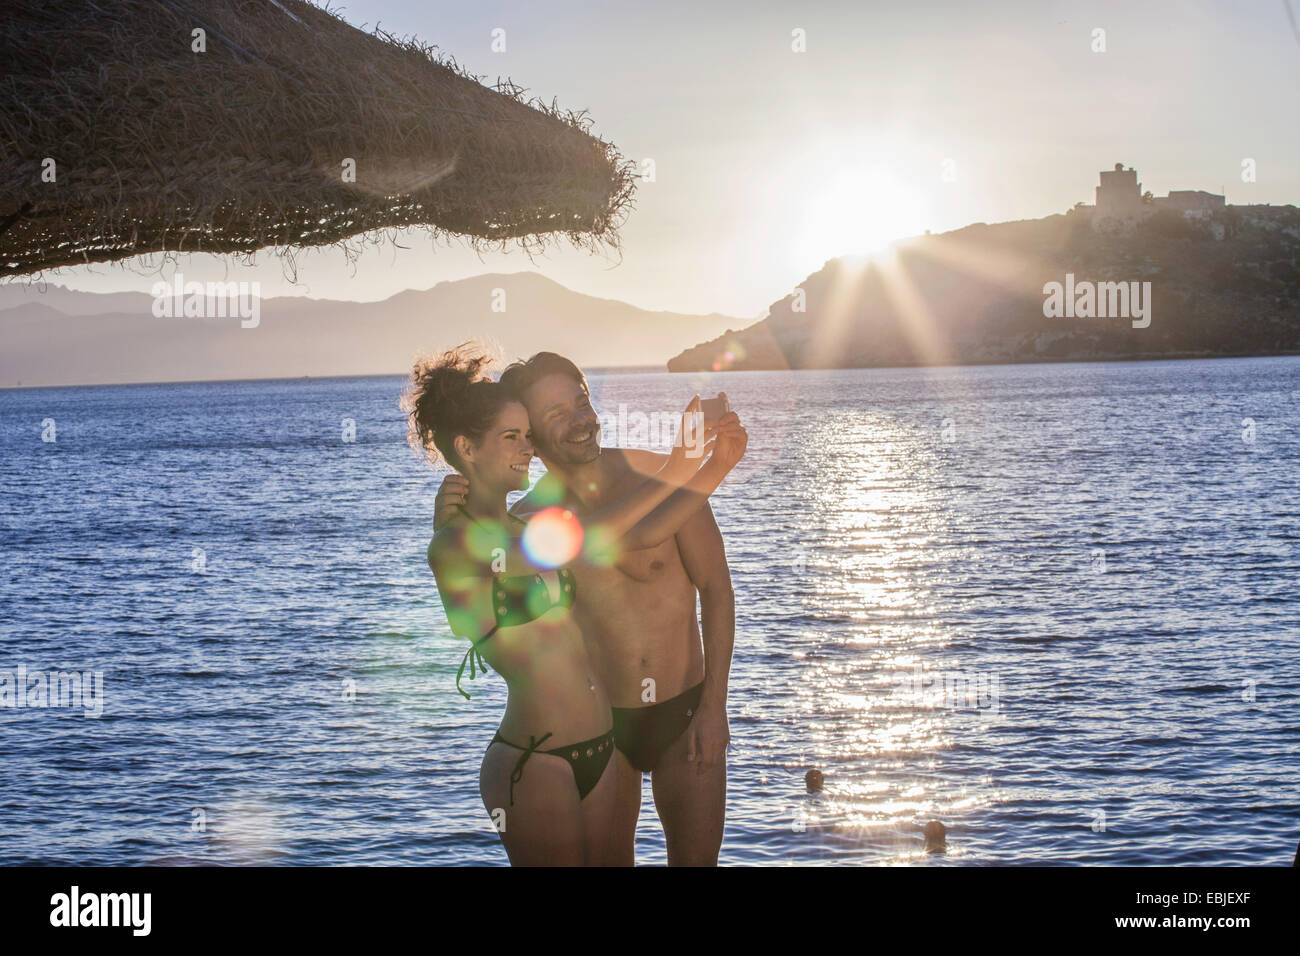 Couple taking selfie on vacation - Stock Image